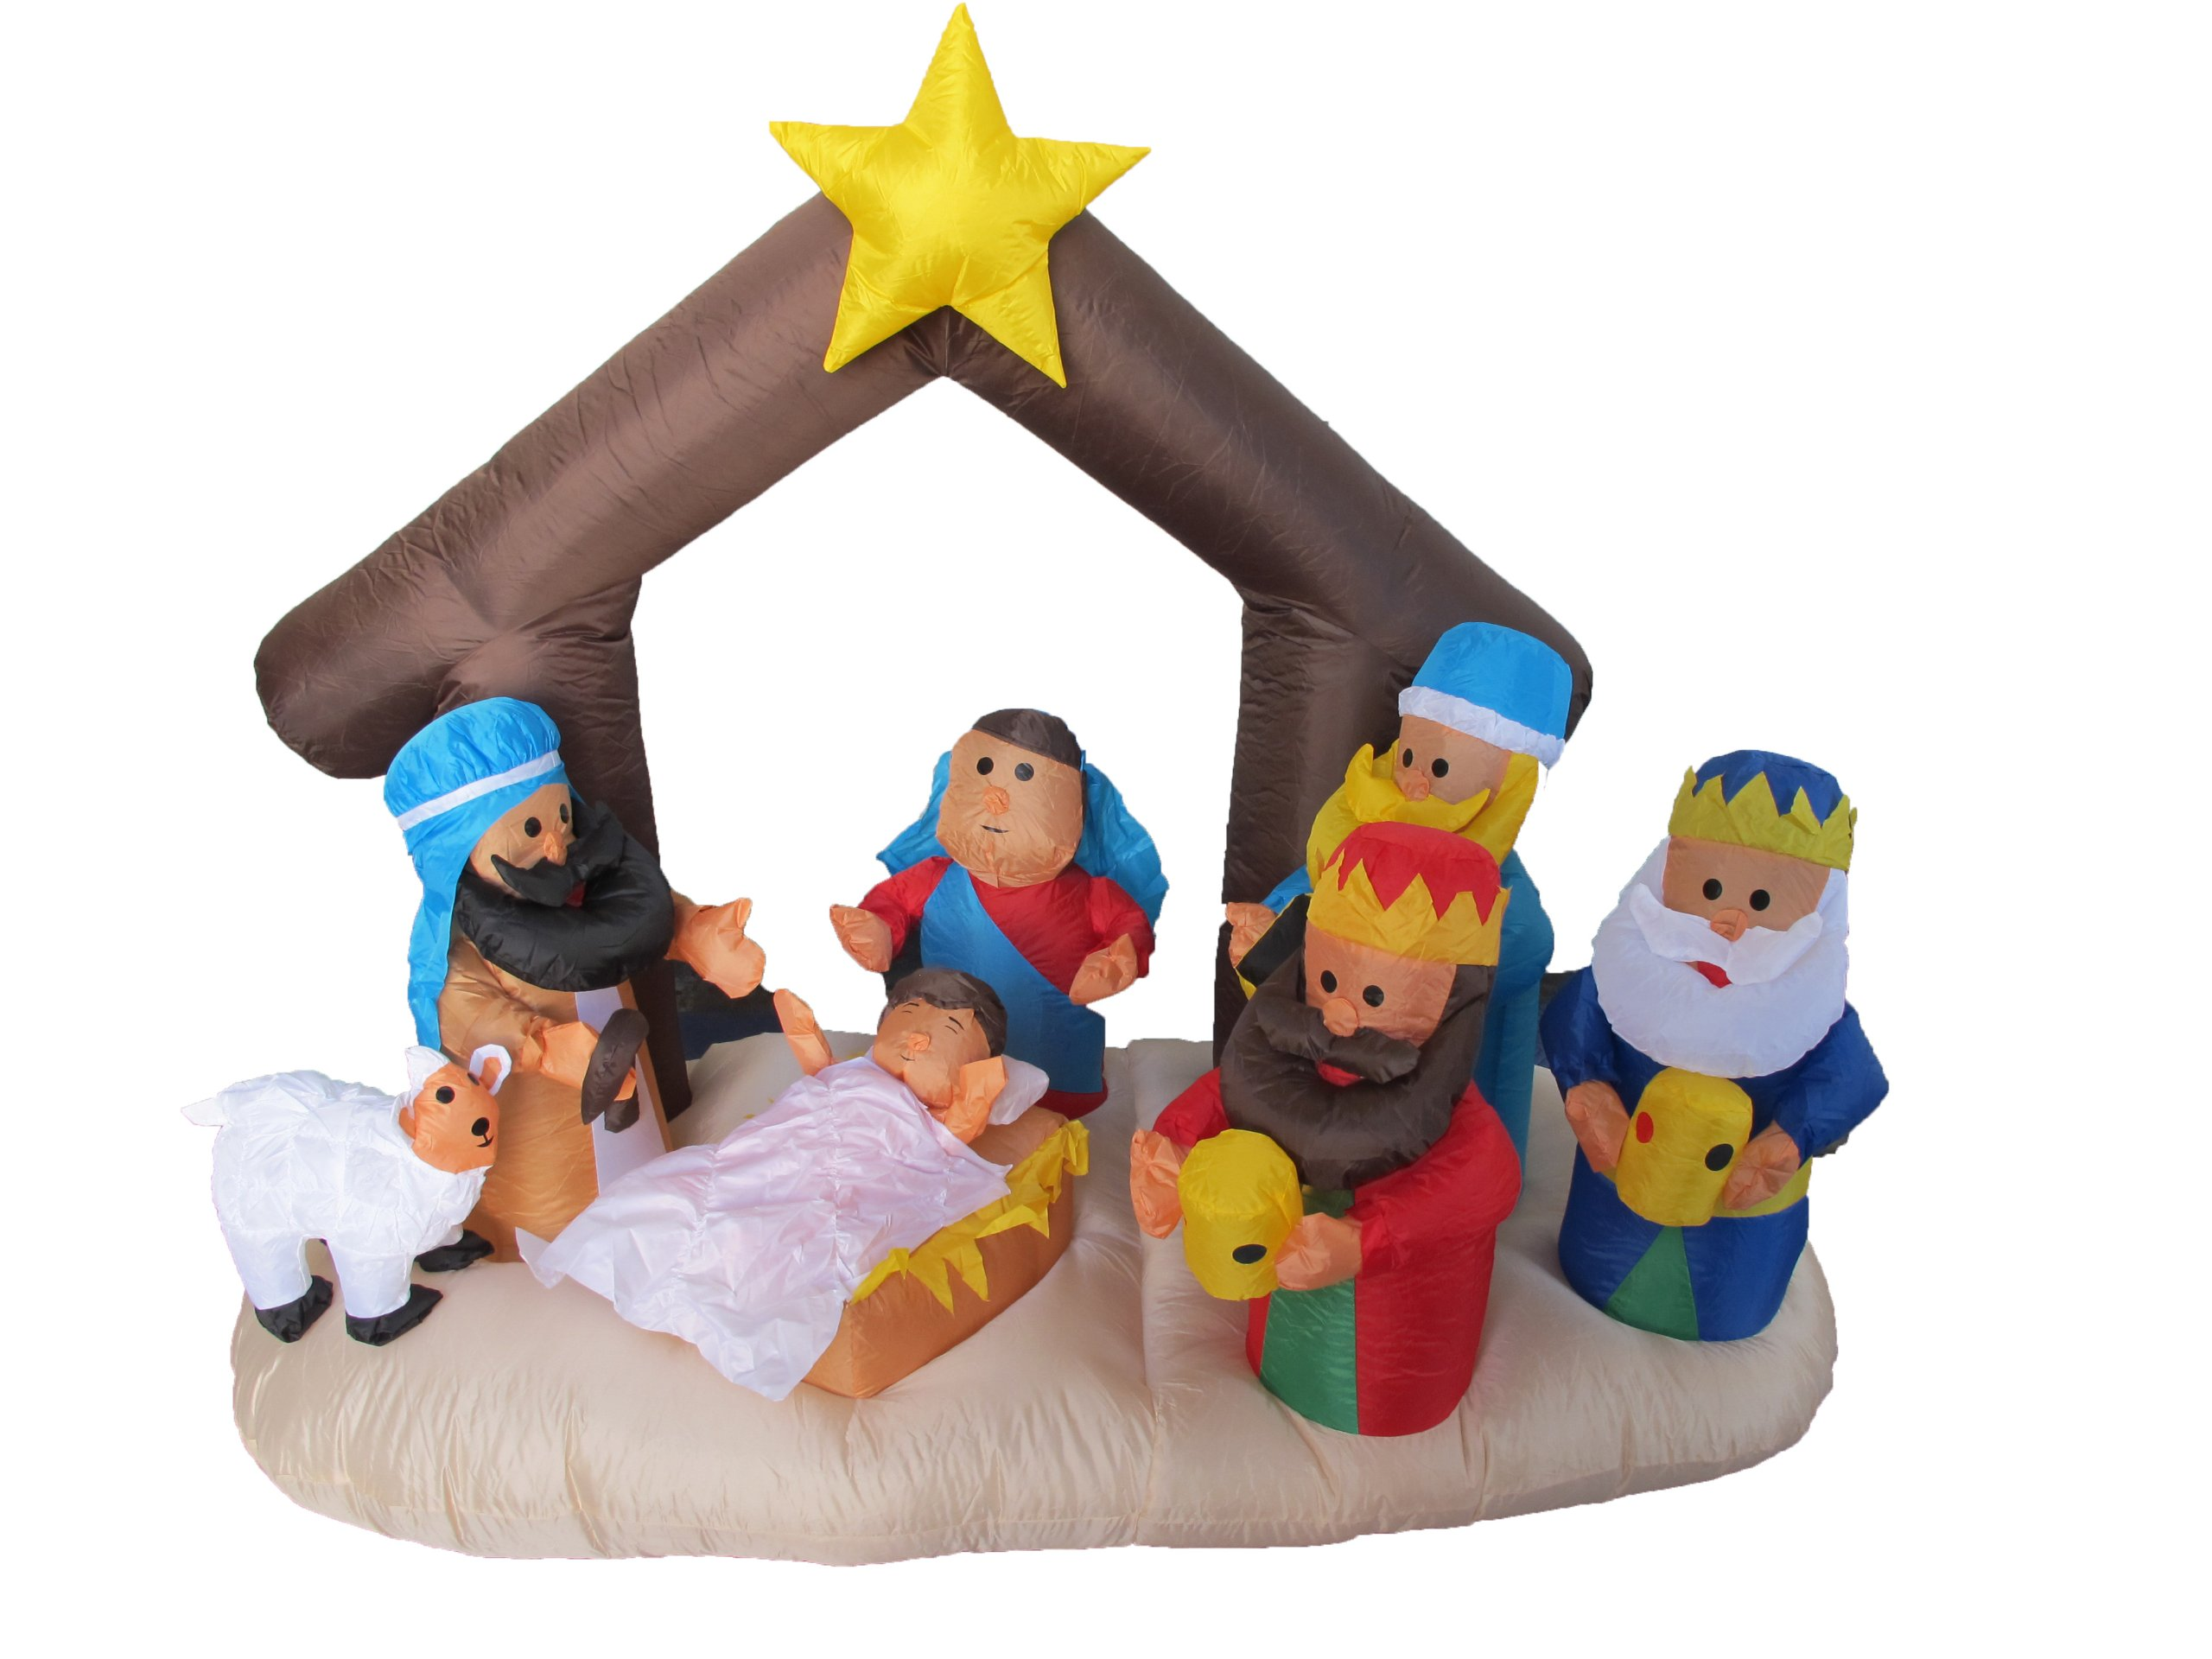 6 Foot Christmas Inflatable Nativity Scene with Three Kings Party Decoration by BZB Goods (Image #2)